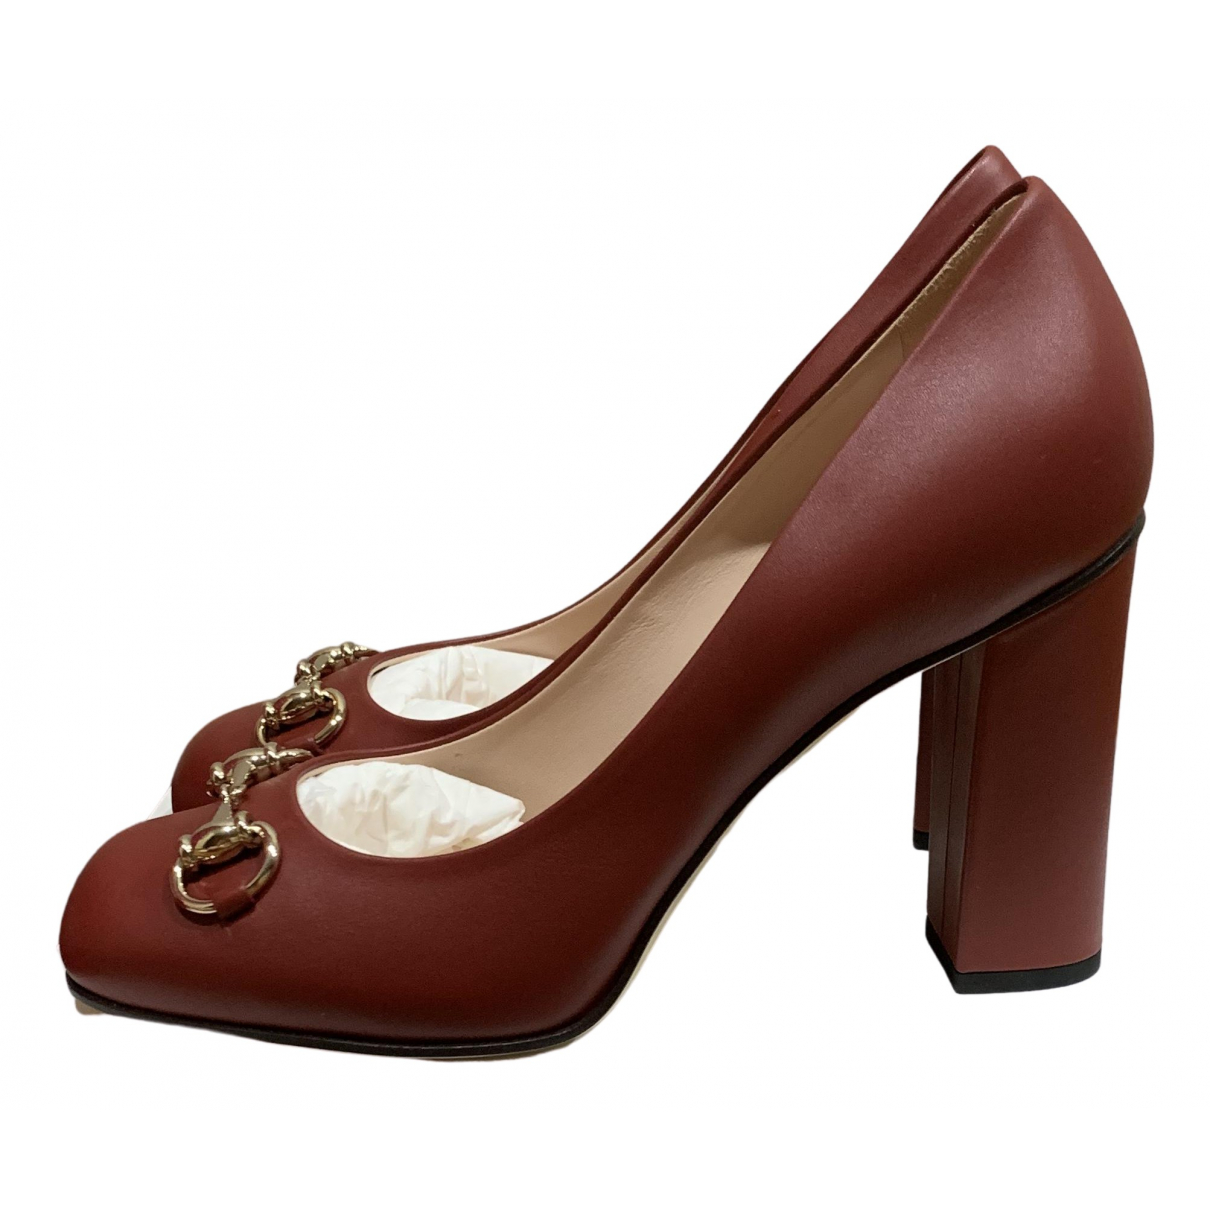 Gucci \N Red Leather Heels for Women 37.5 EU